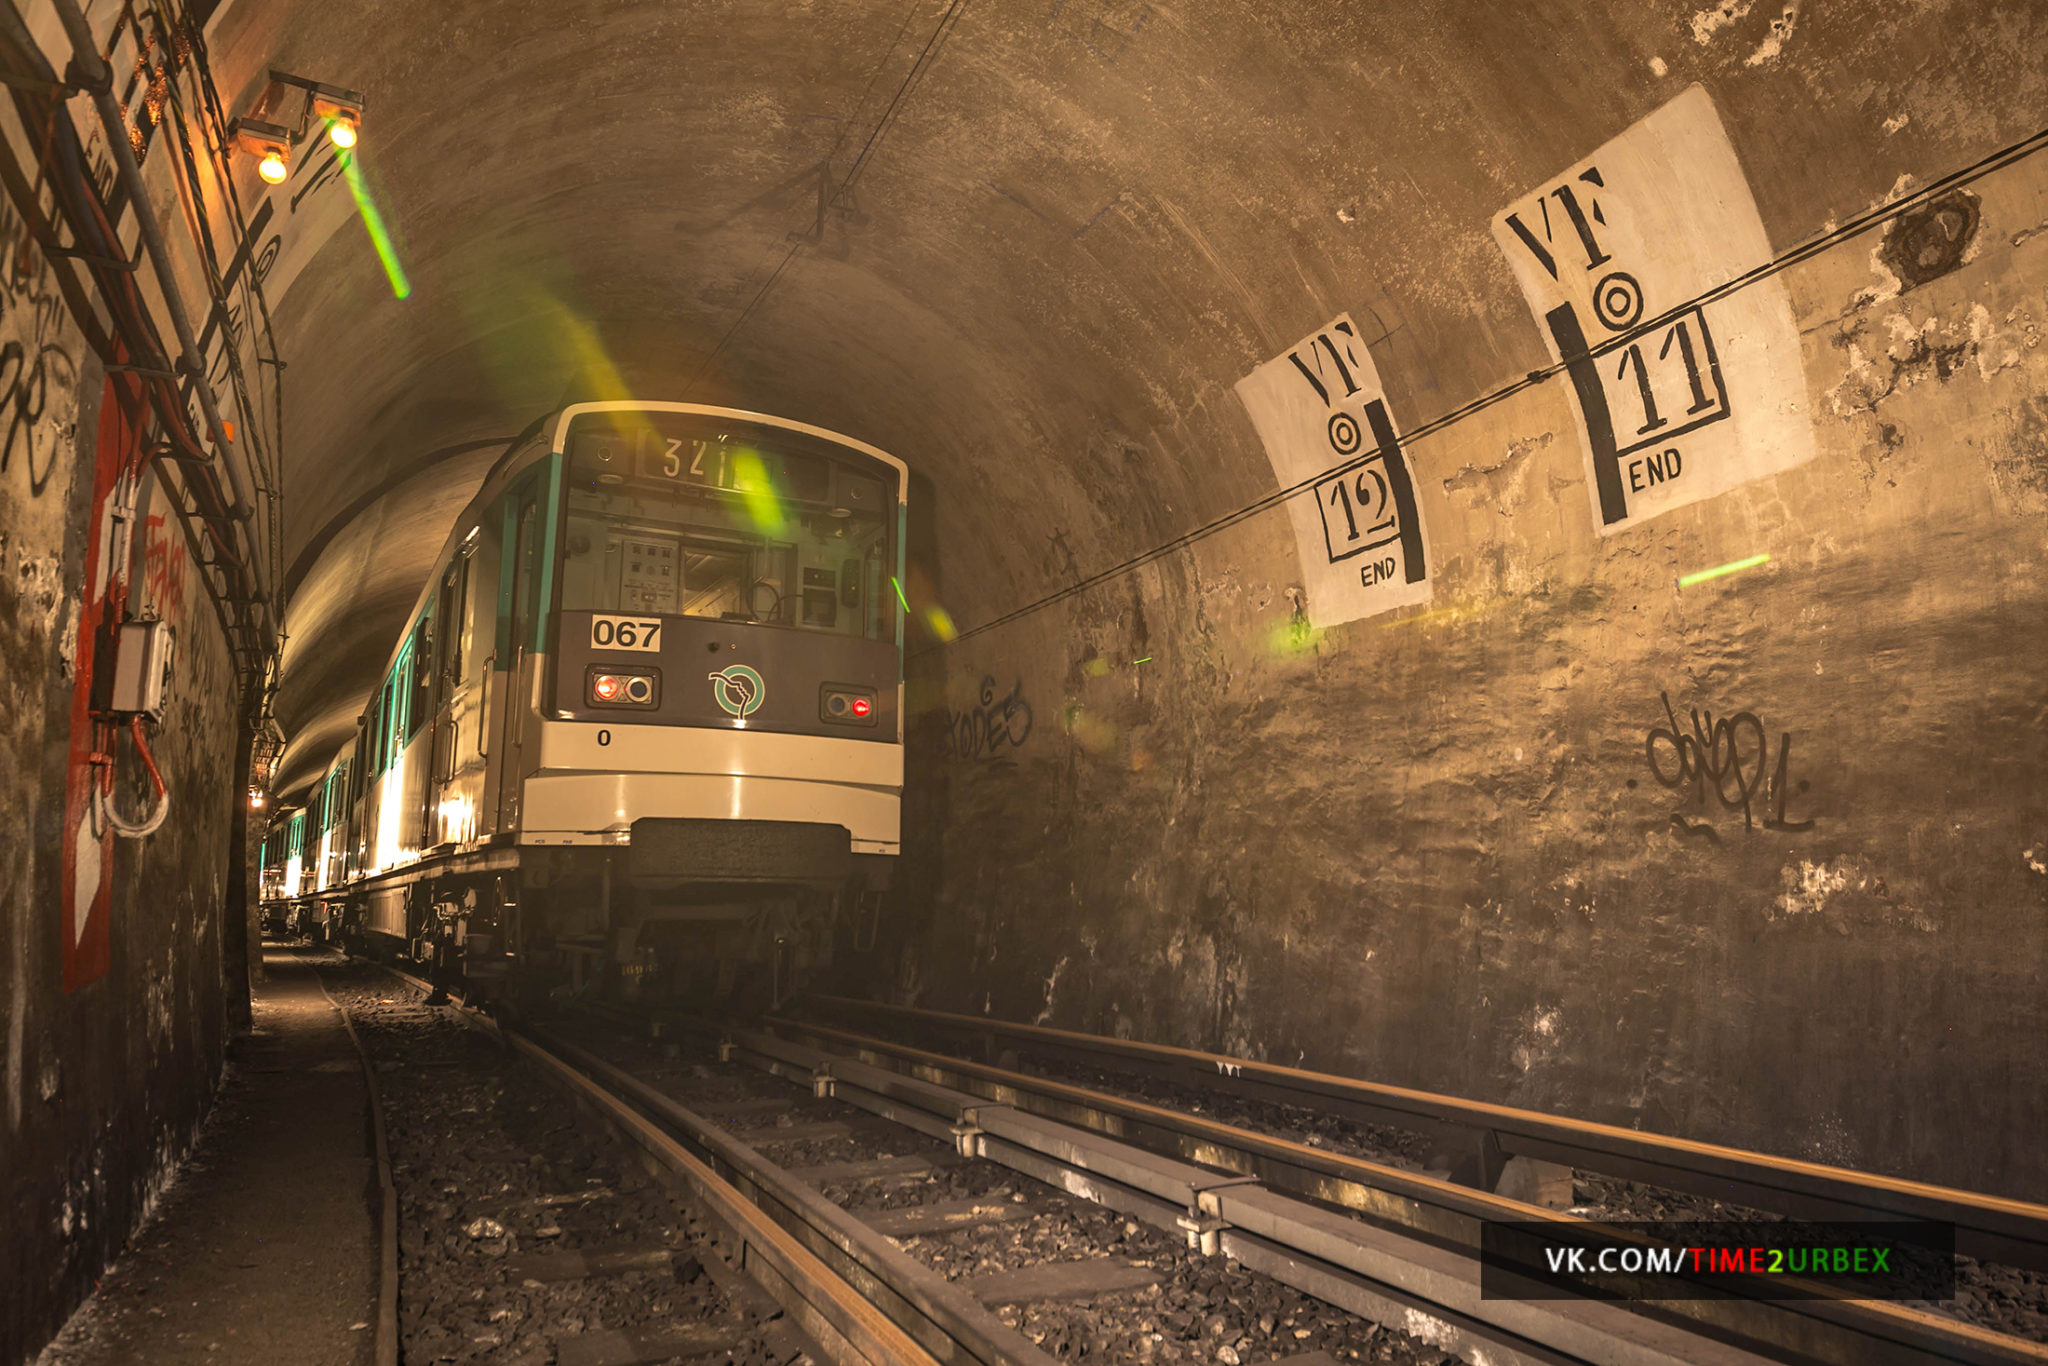 62 7 GHOST STATIONS OF THE PARIS METRO AND HOW TO GET INTO THE ILLEGALLY + UNUSUAL TUNNELS + RER